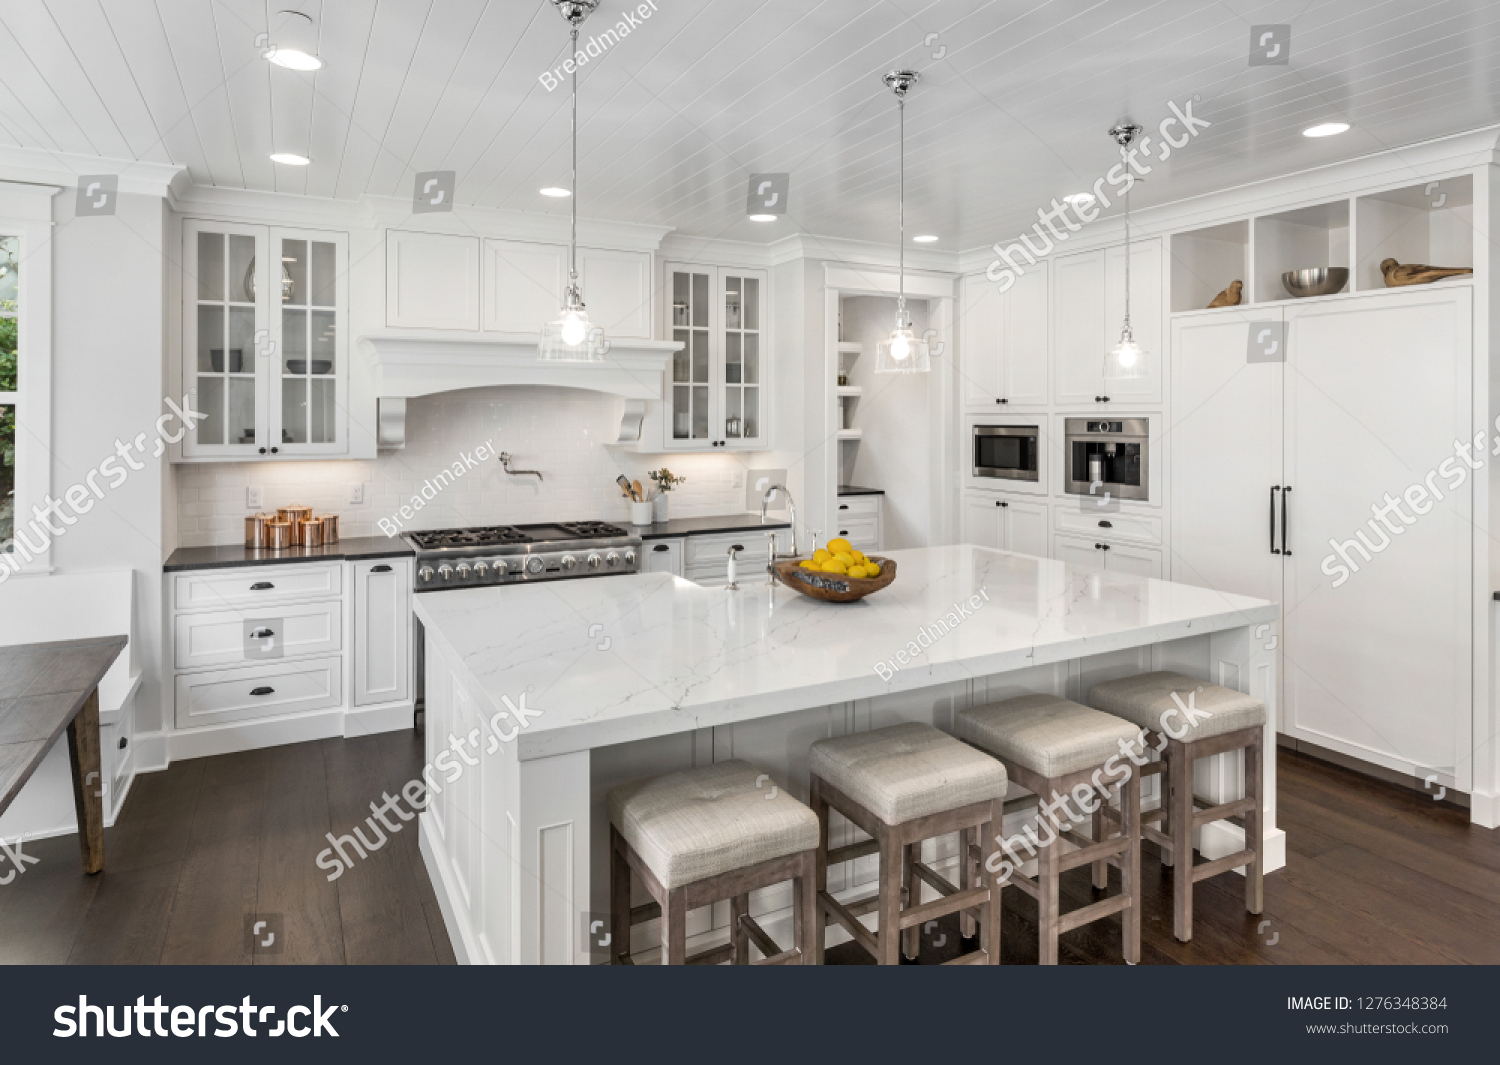 Download Beautiful White Kitchens Pics